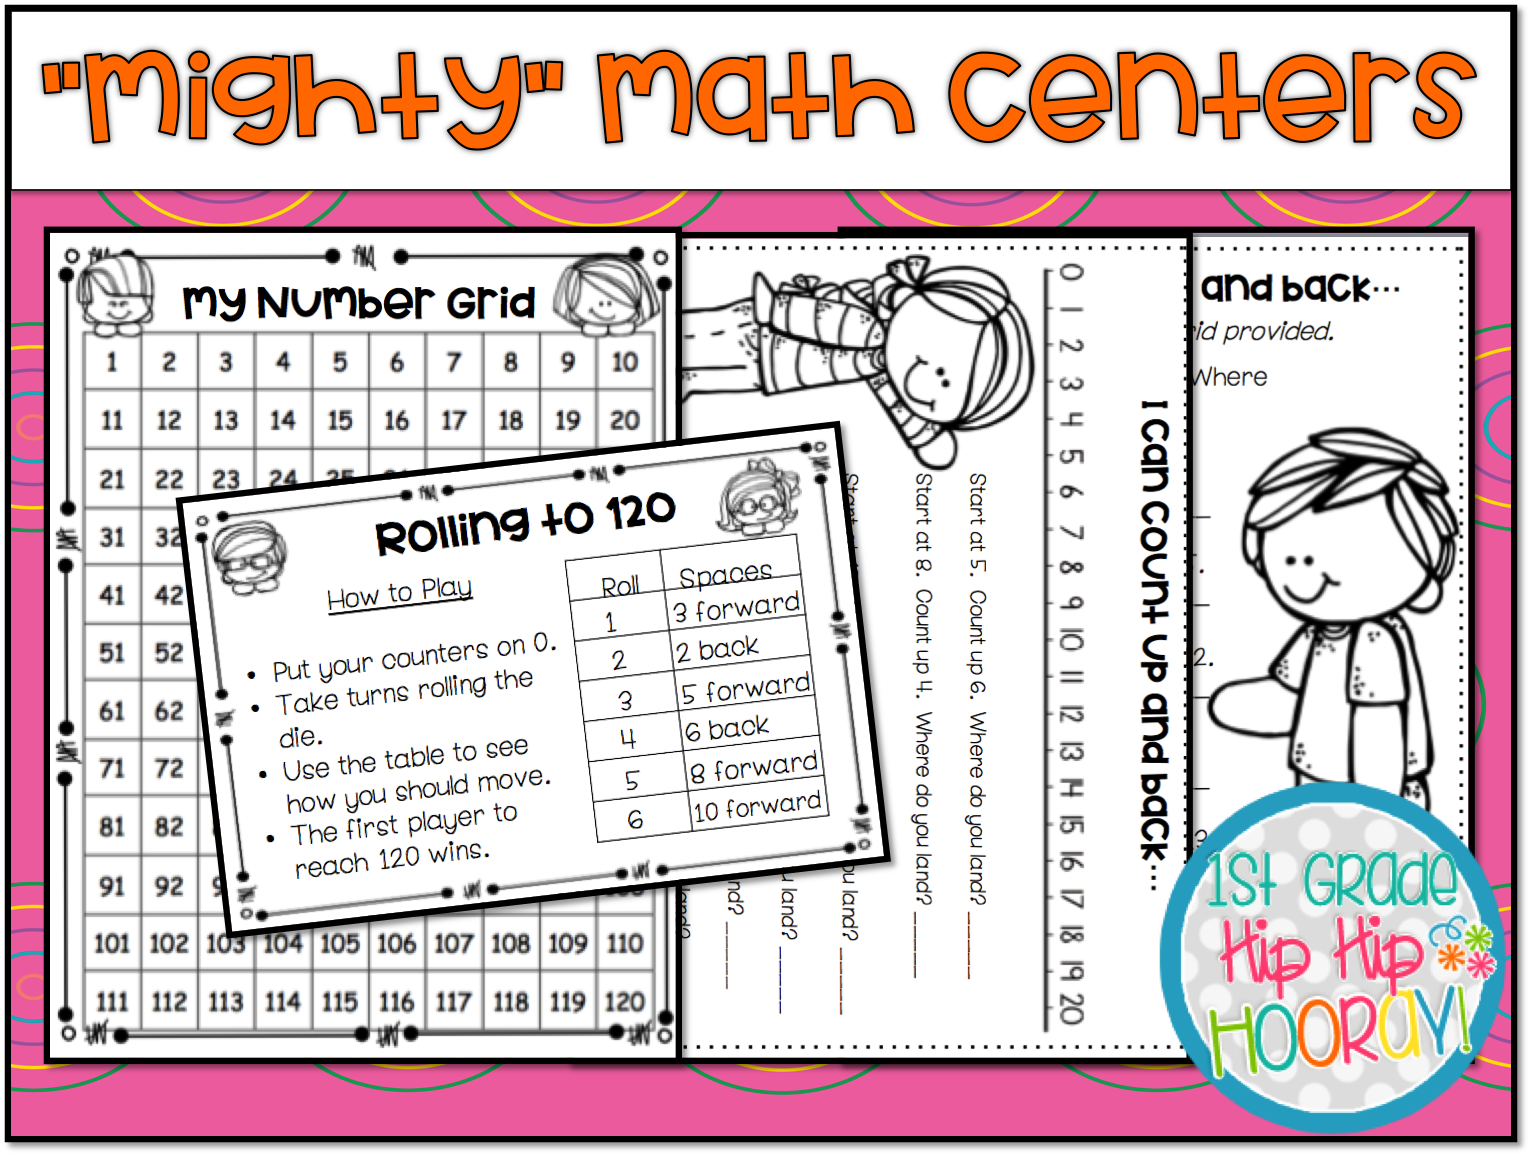 1st Grade Hip Hip Hooray Mighty Math Centers For